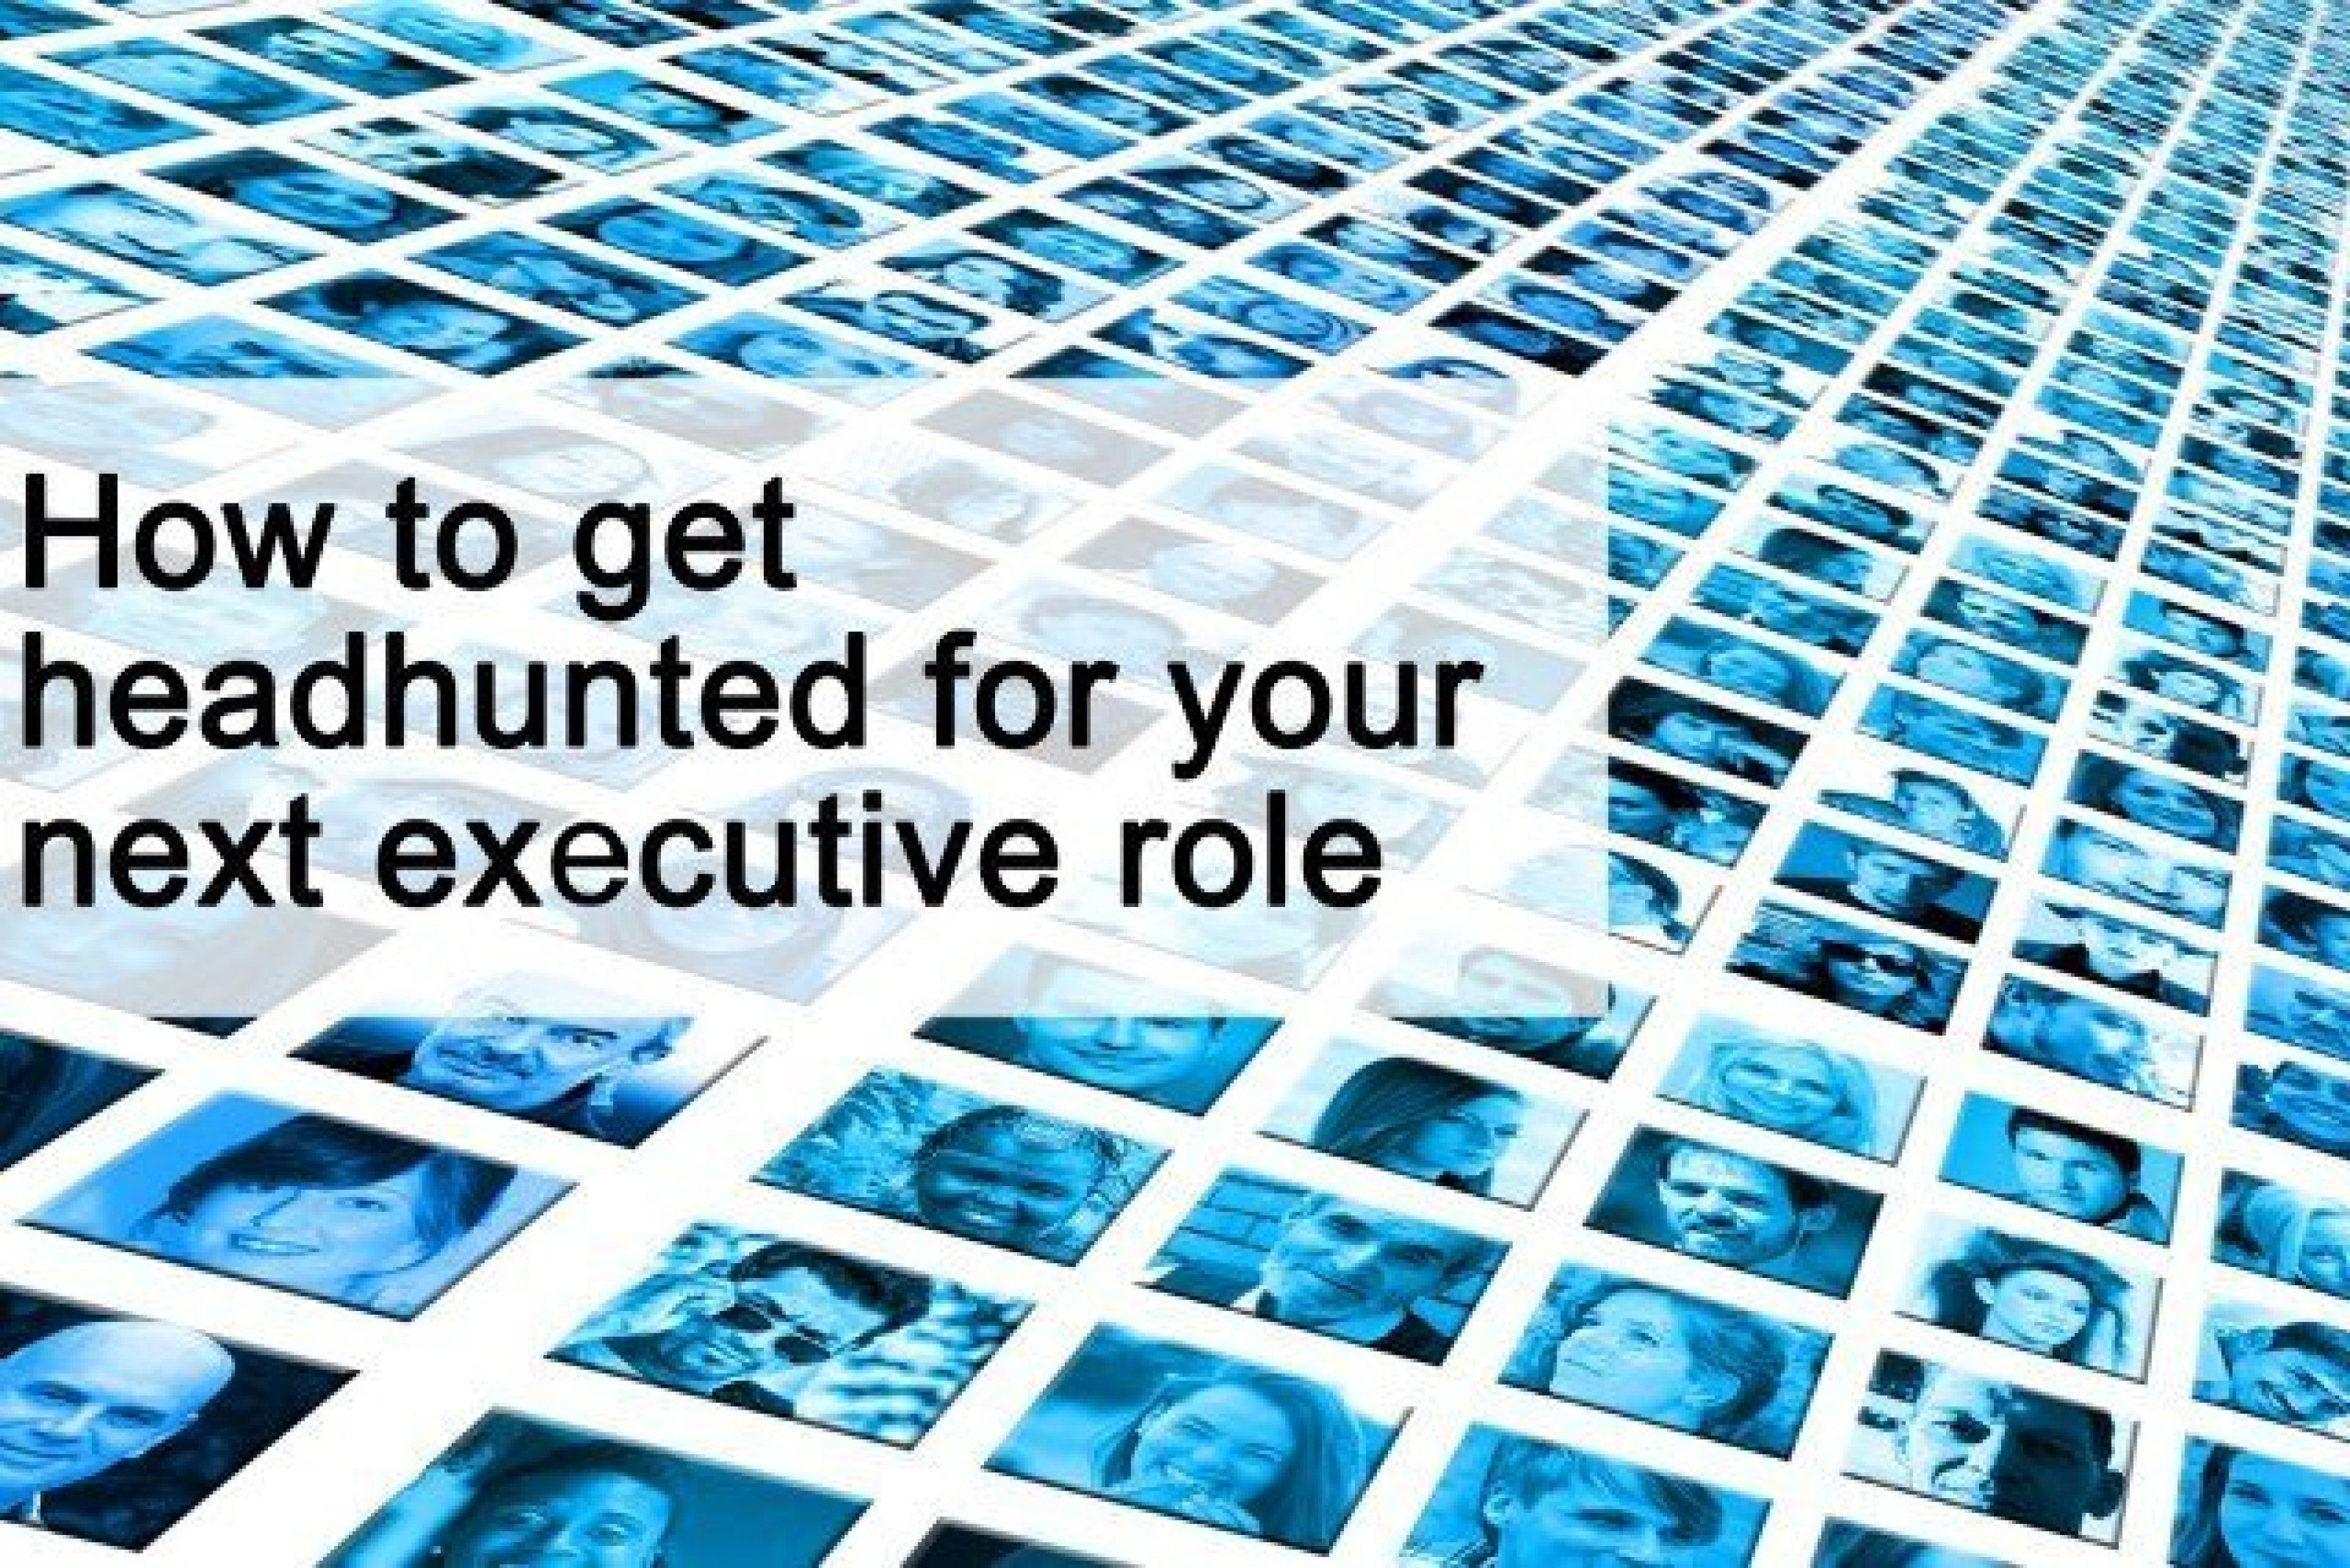 How to get headhunted for your next senior executive role